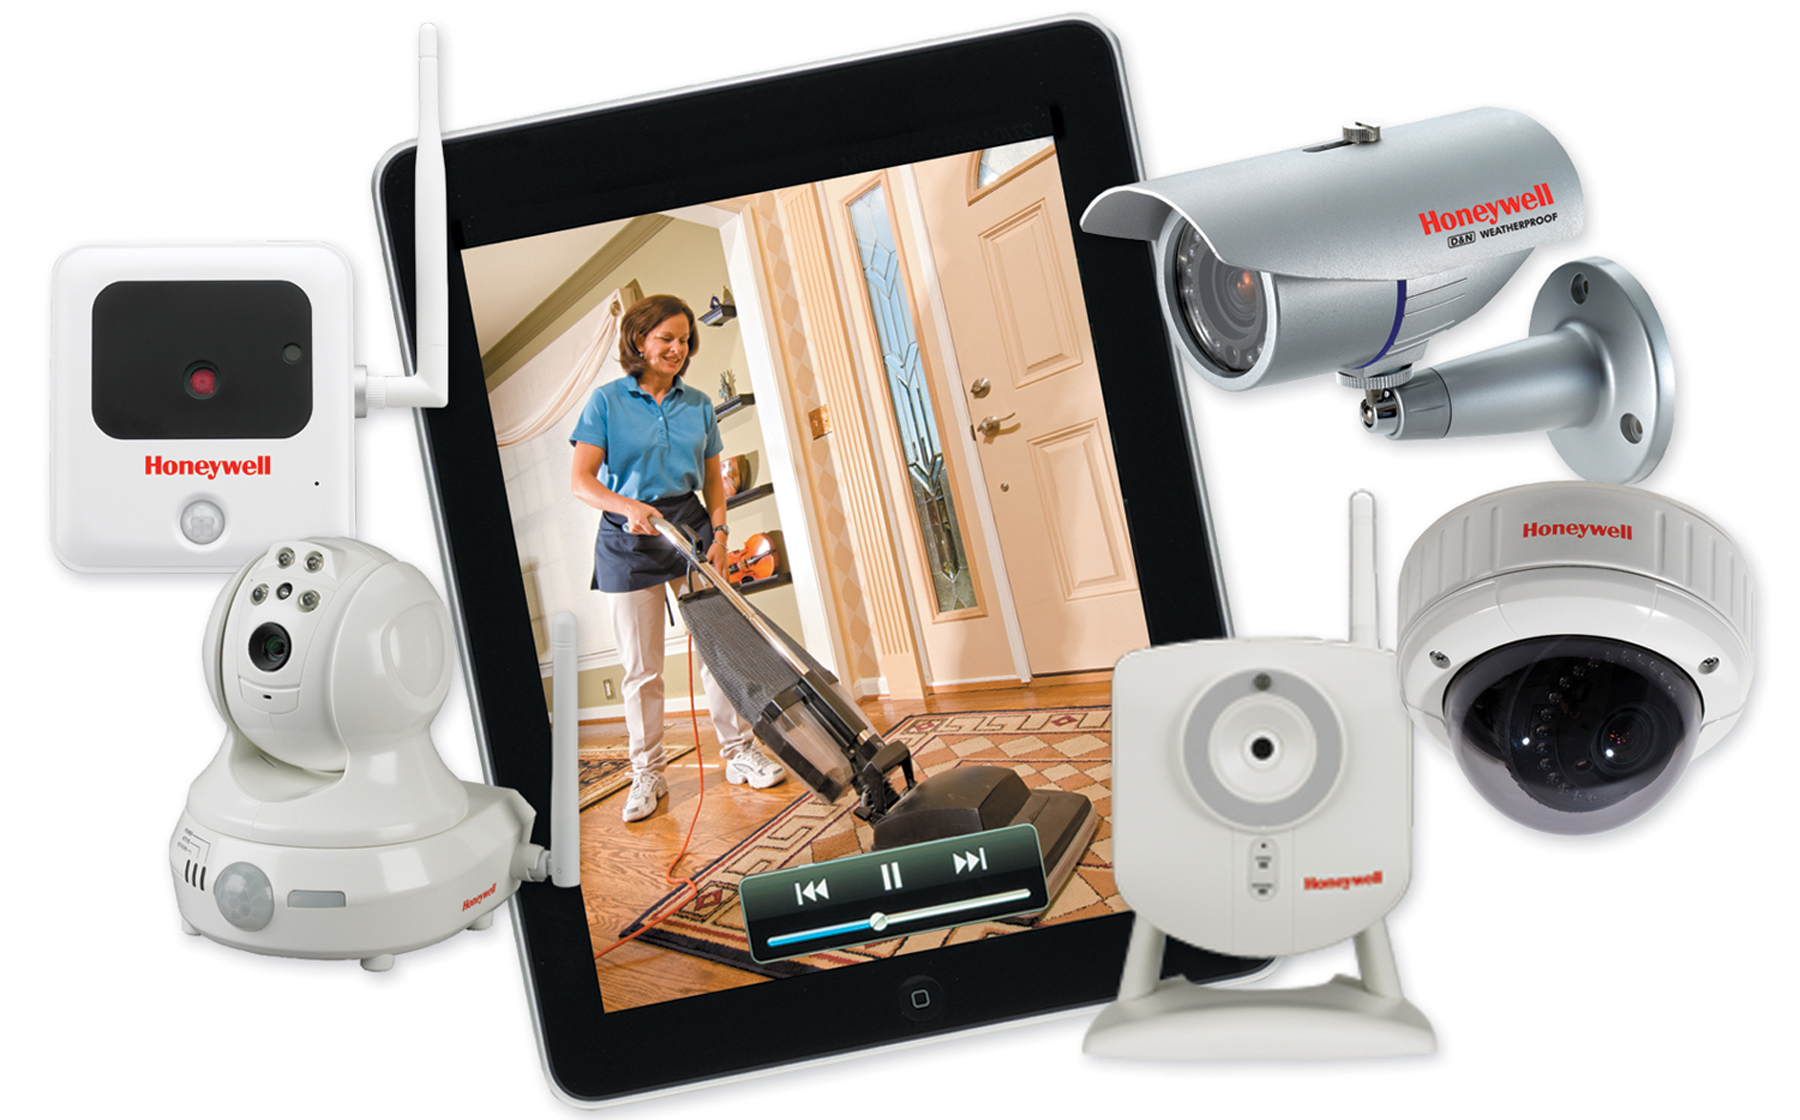 Installing Home Security System: Points to Ponder Over - Image 1